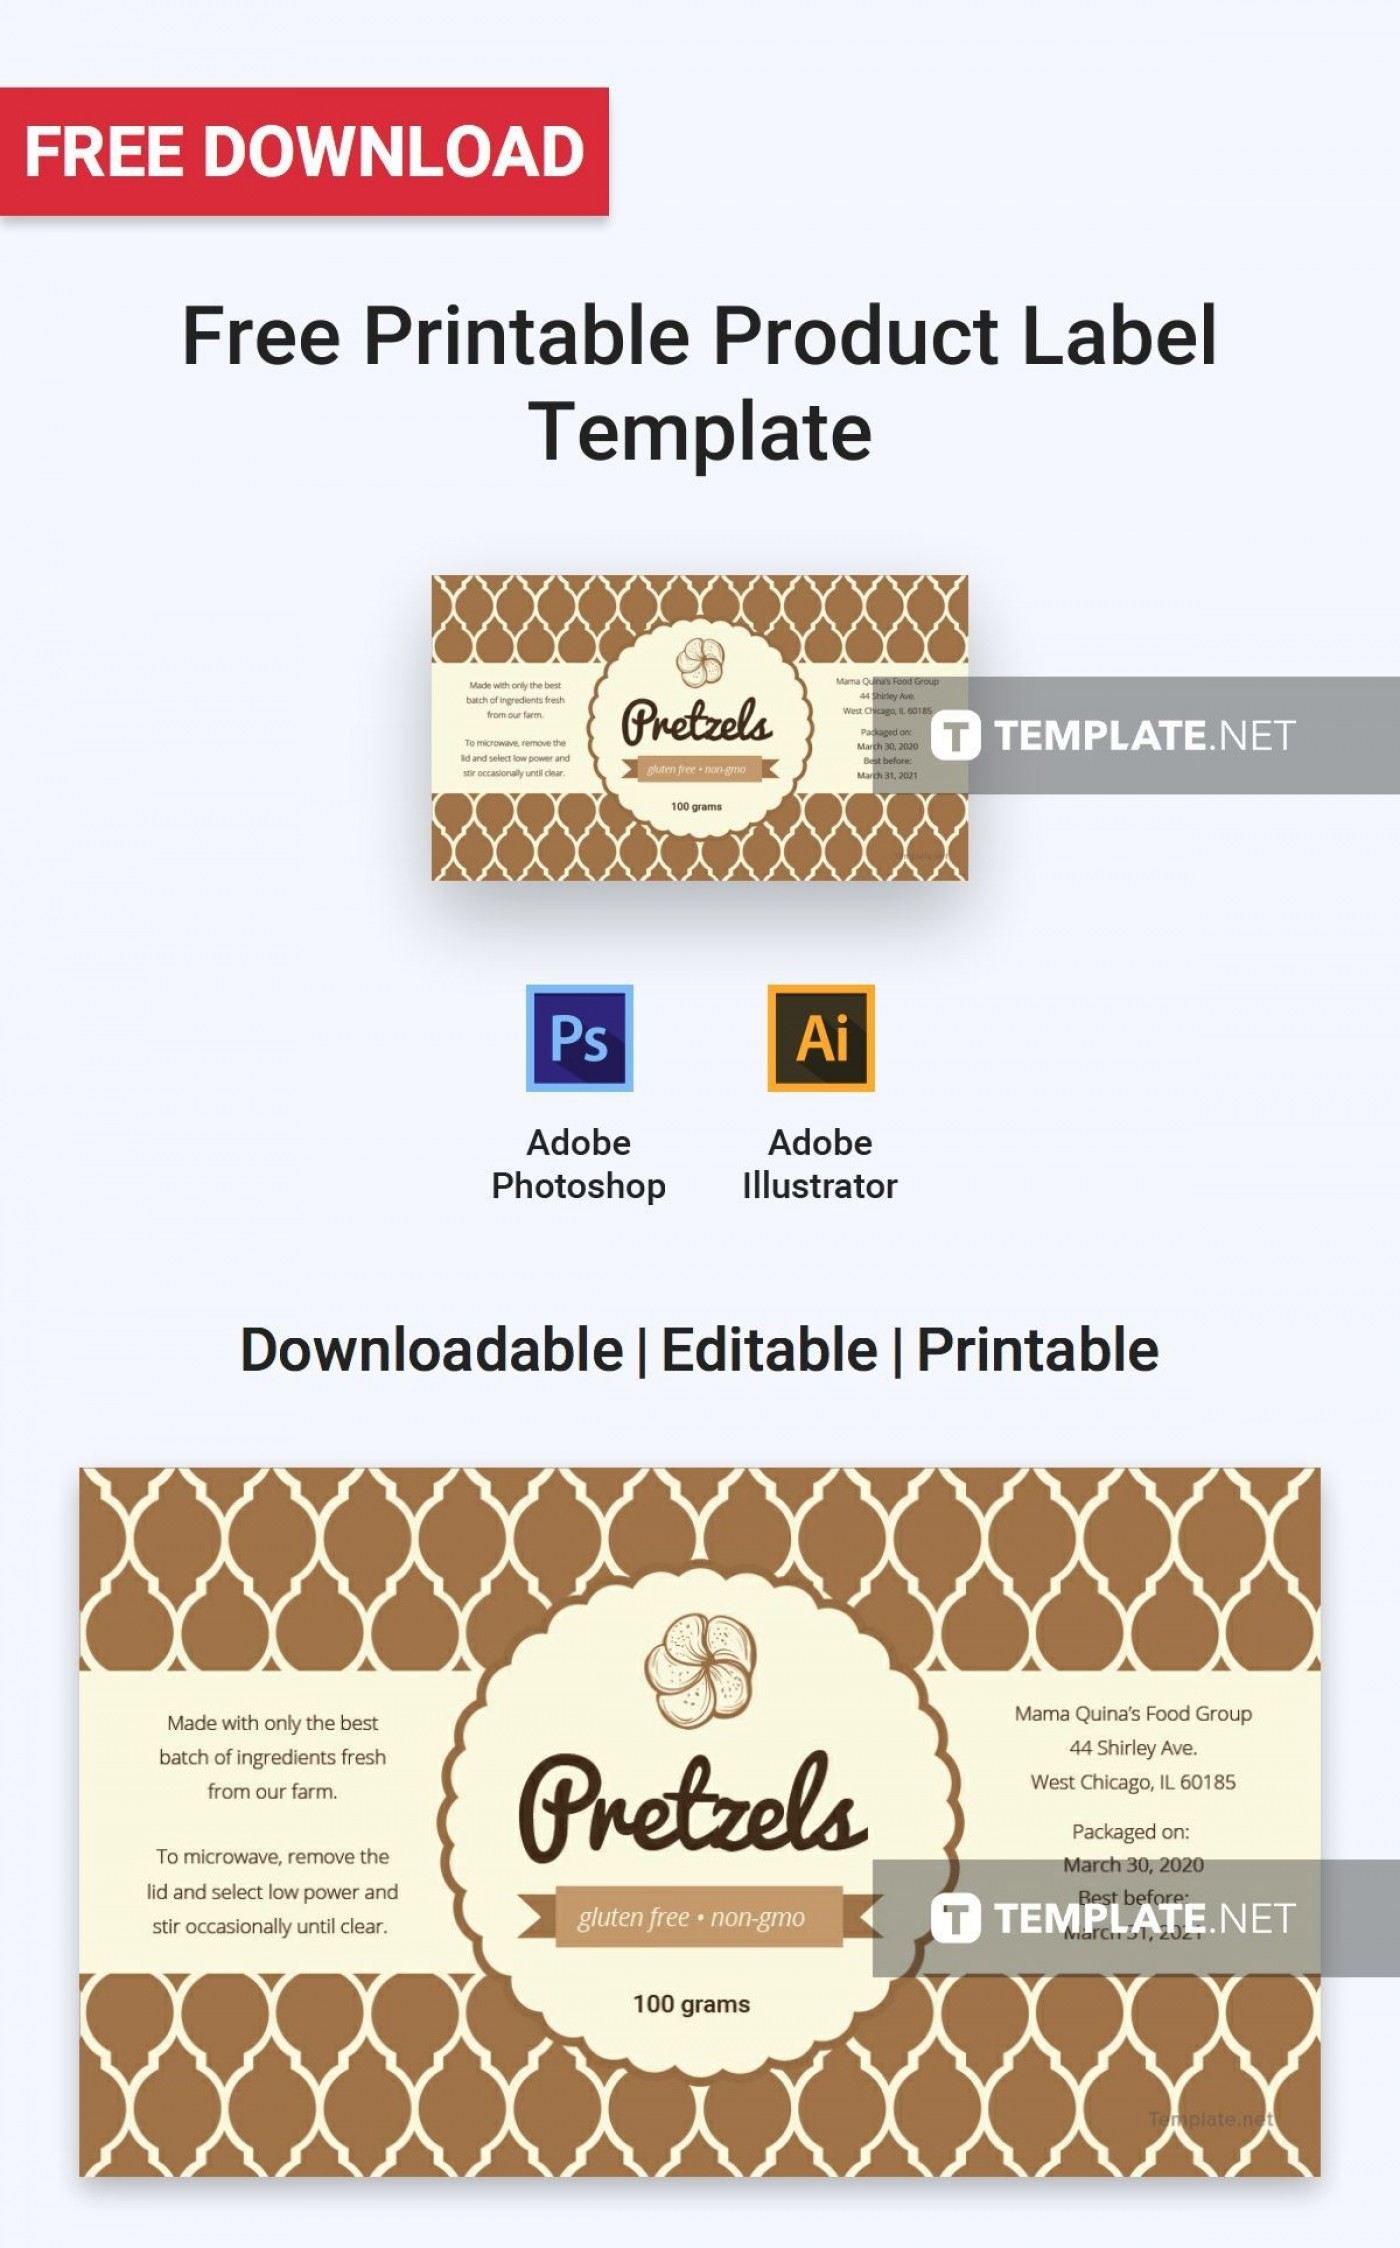 004 Sensational Microsoft Word Label Template Free Download Picture 1400